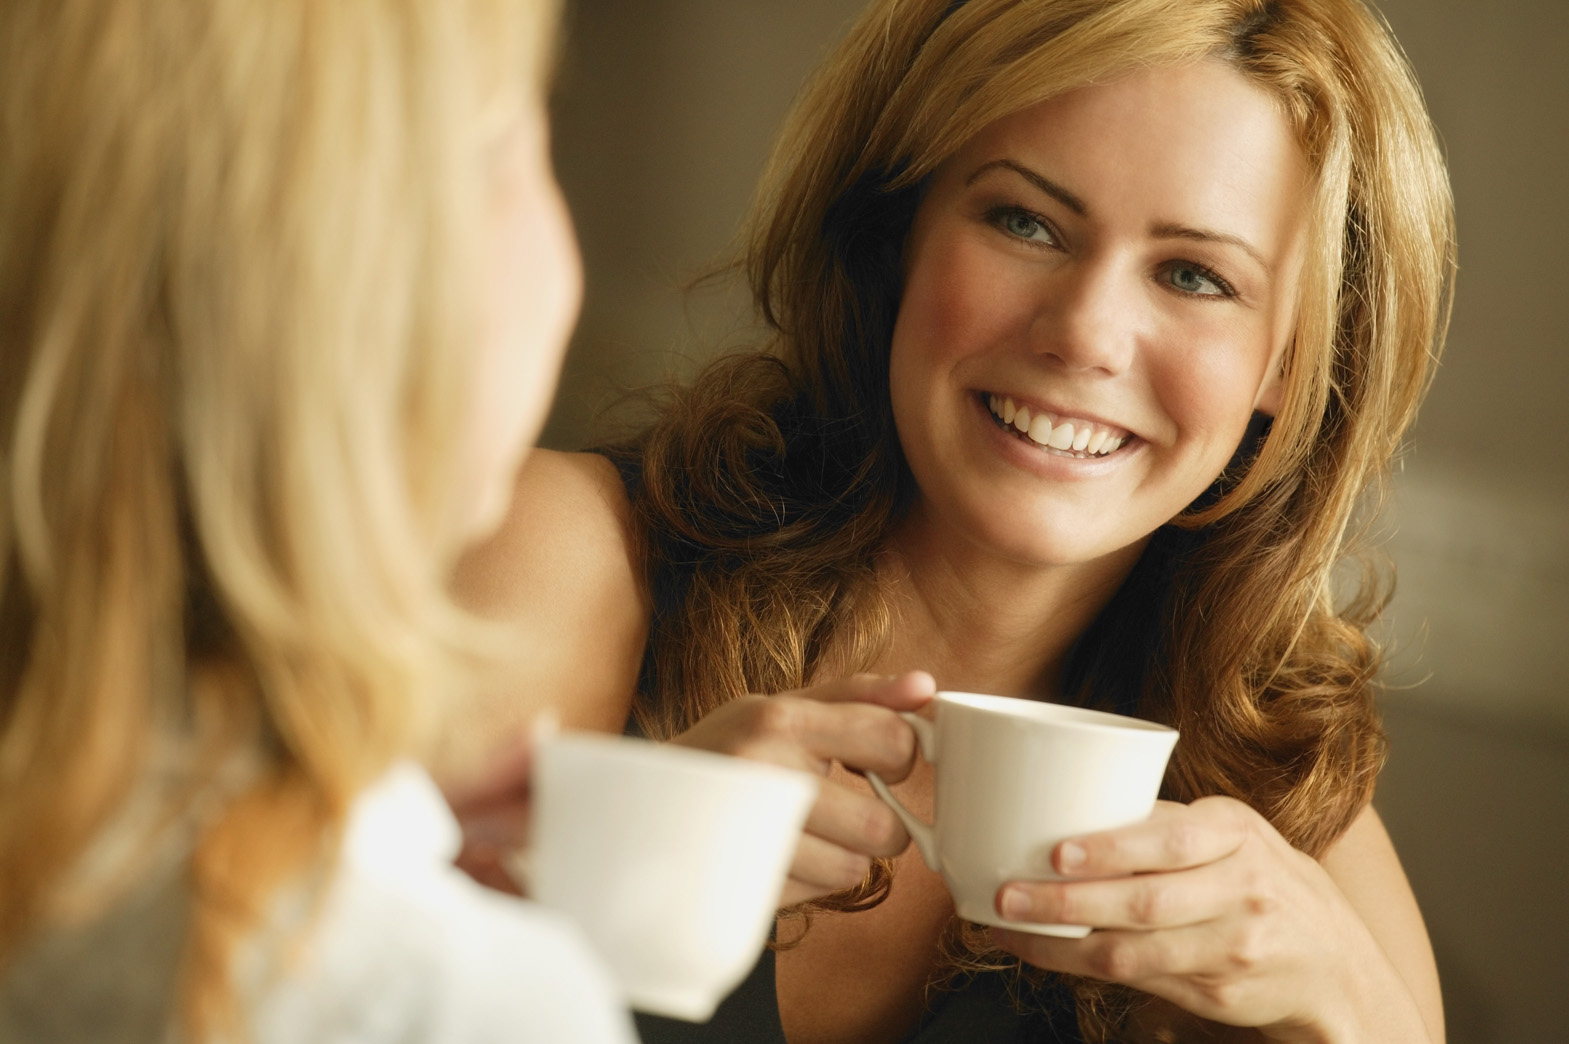 http://www.fem2pt0.com/wp-content/uploads/2011/09/women-drinking-coffee.jpg